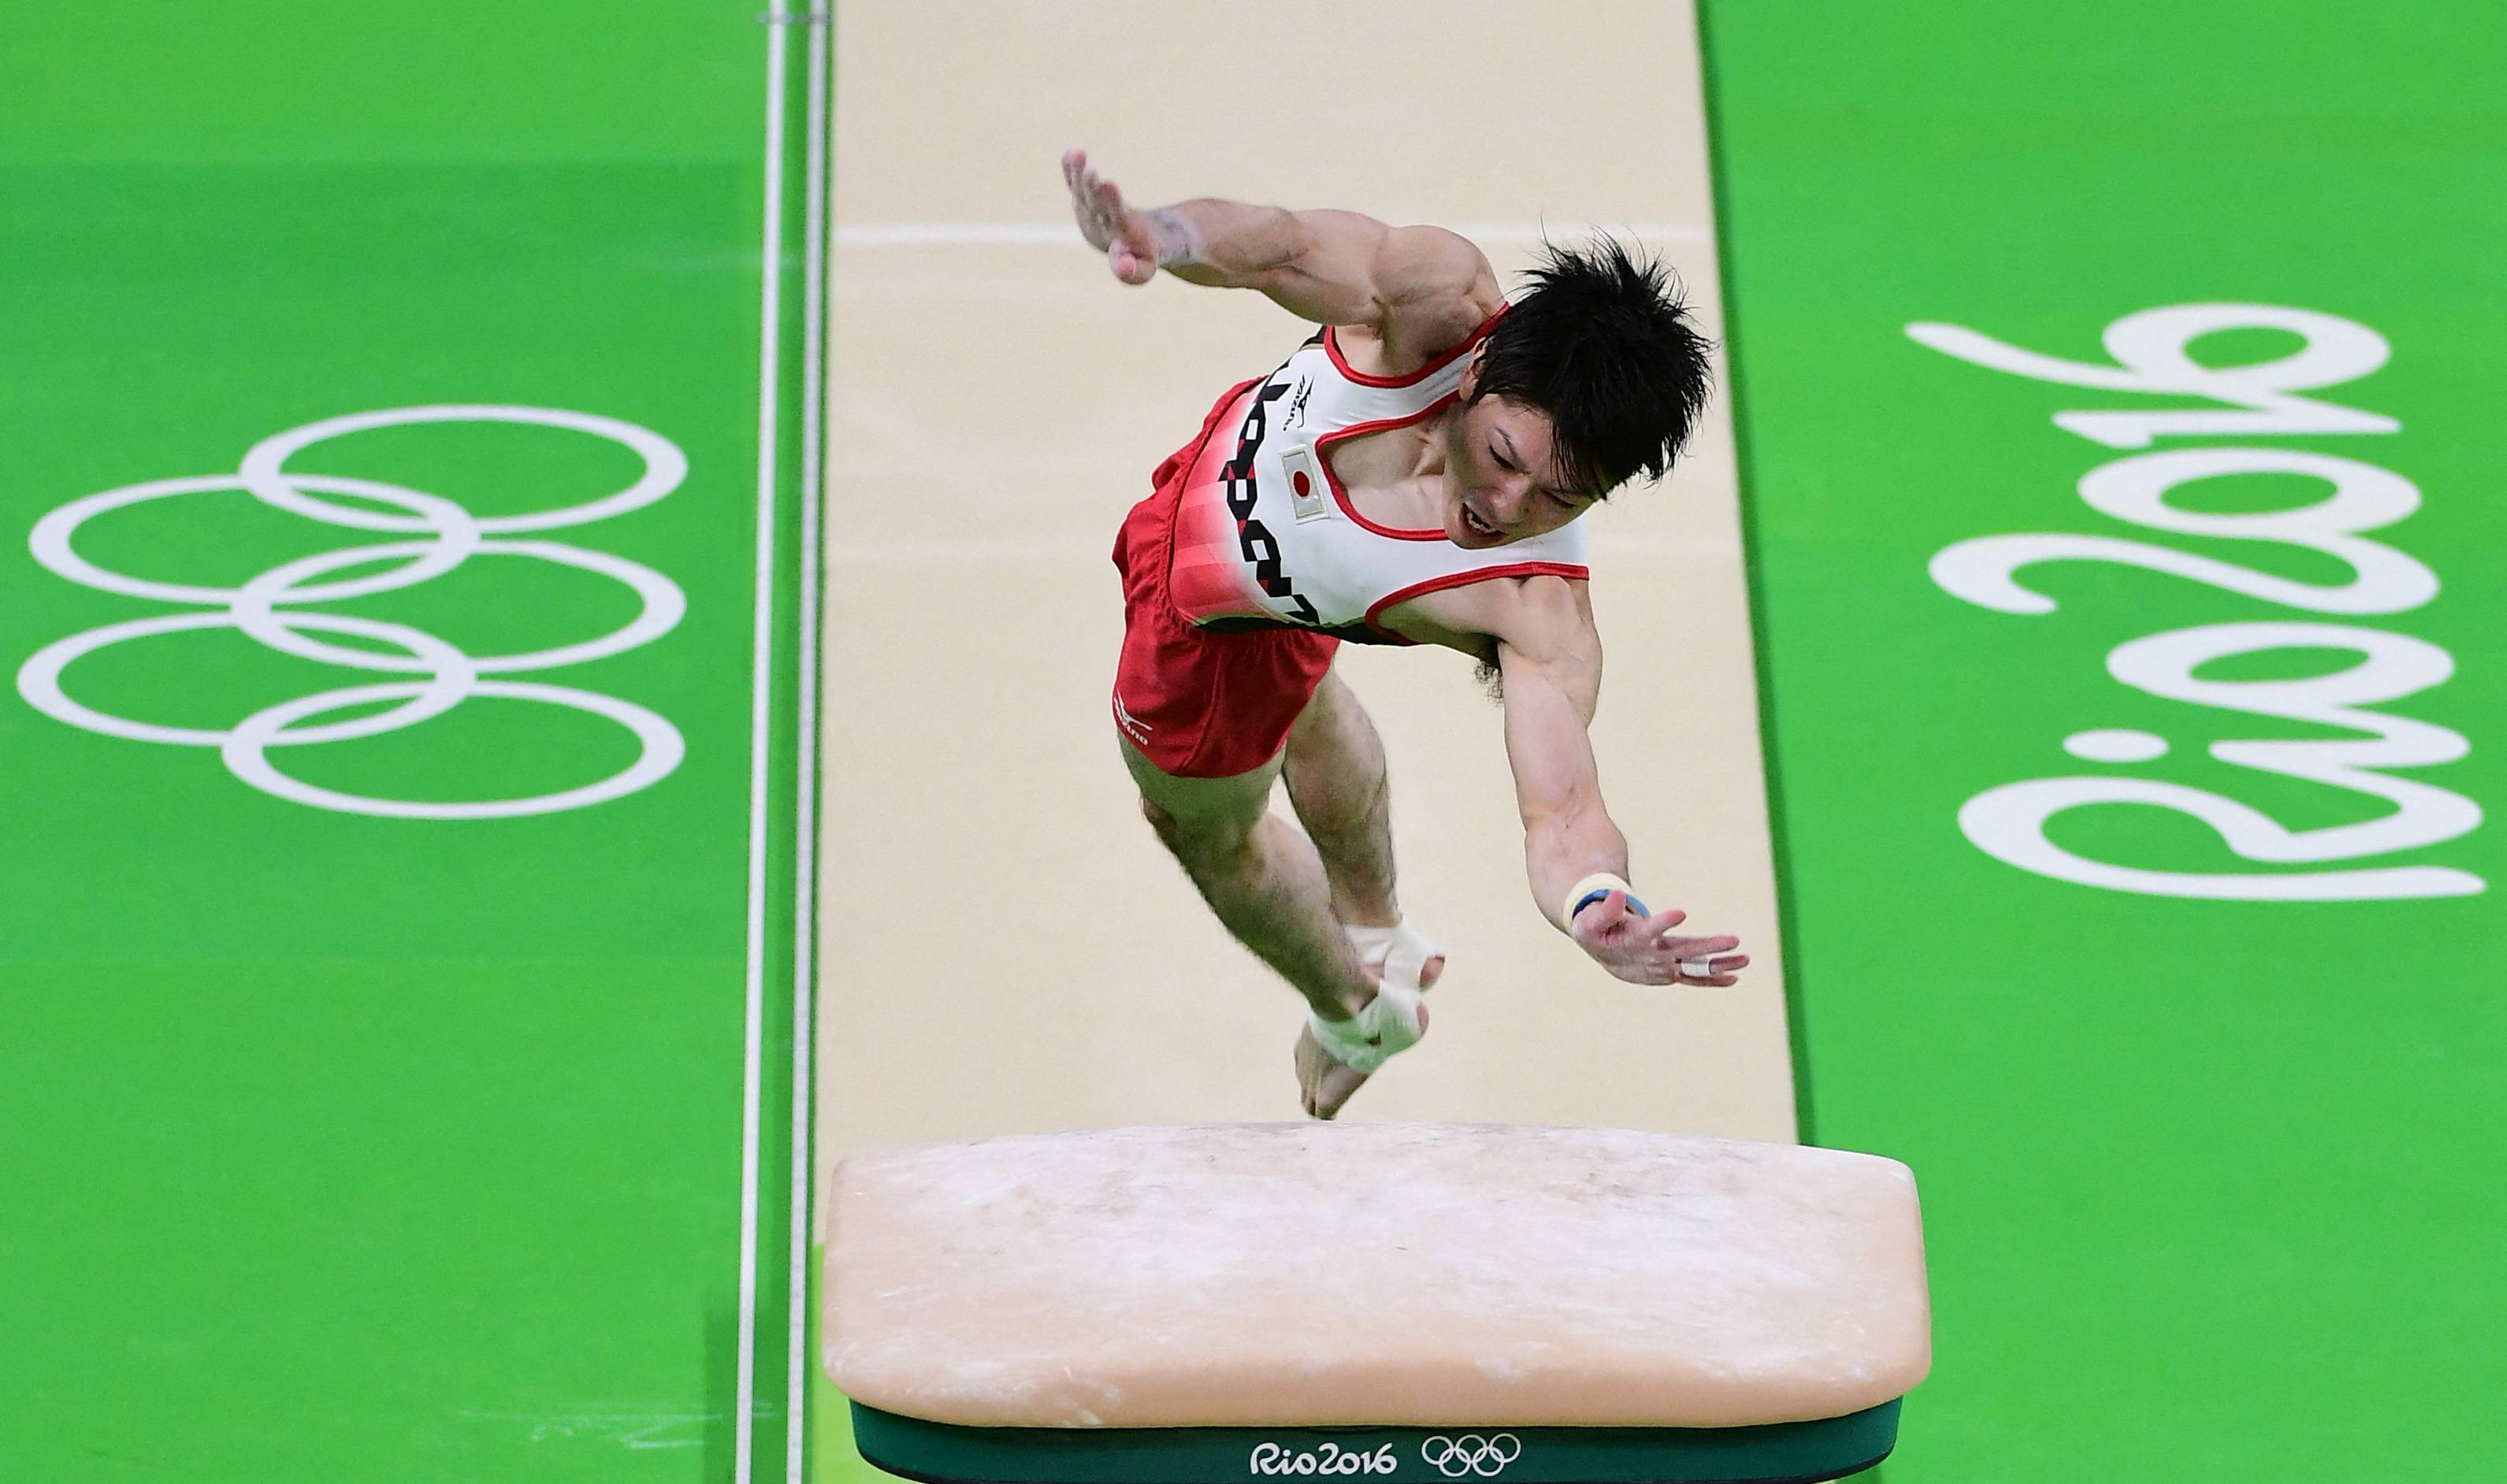 Kohei Uchimura competes in the vault event in the men's team final for artistic gymnastics during the 2016 Olympic Games in Rio de Janeiro. | AFP-JIJI